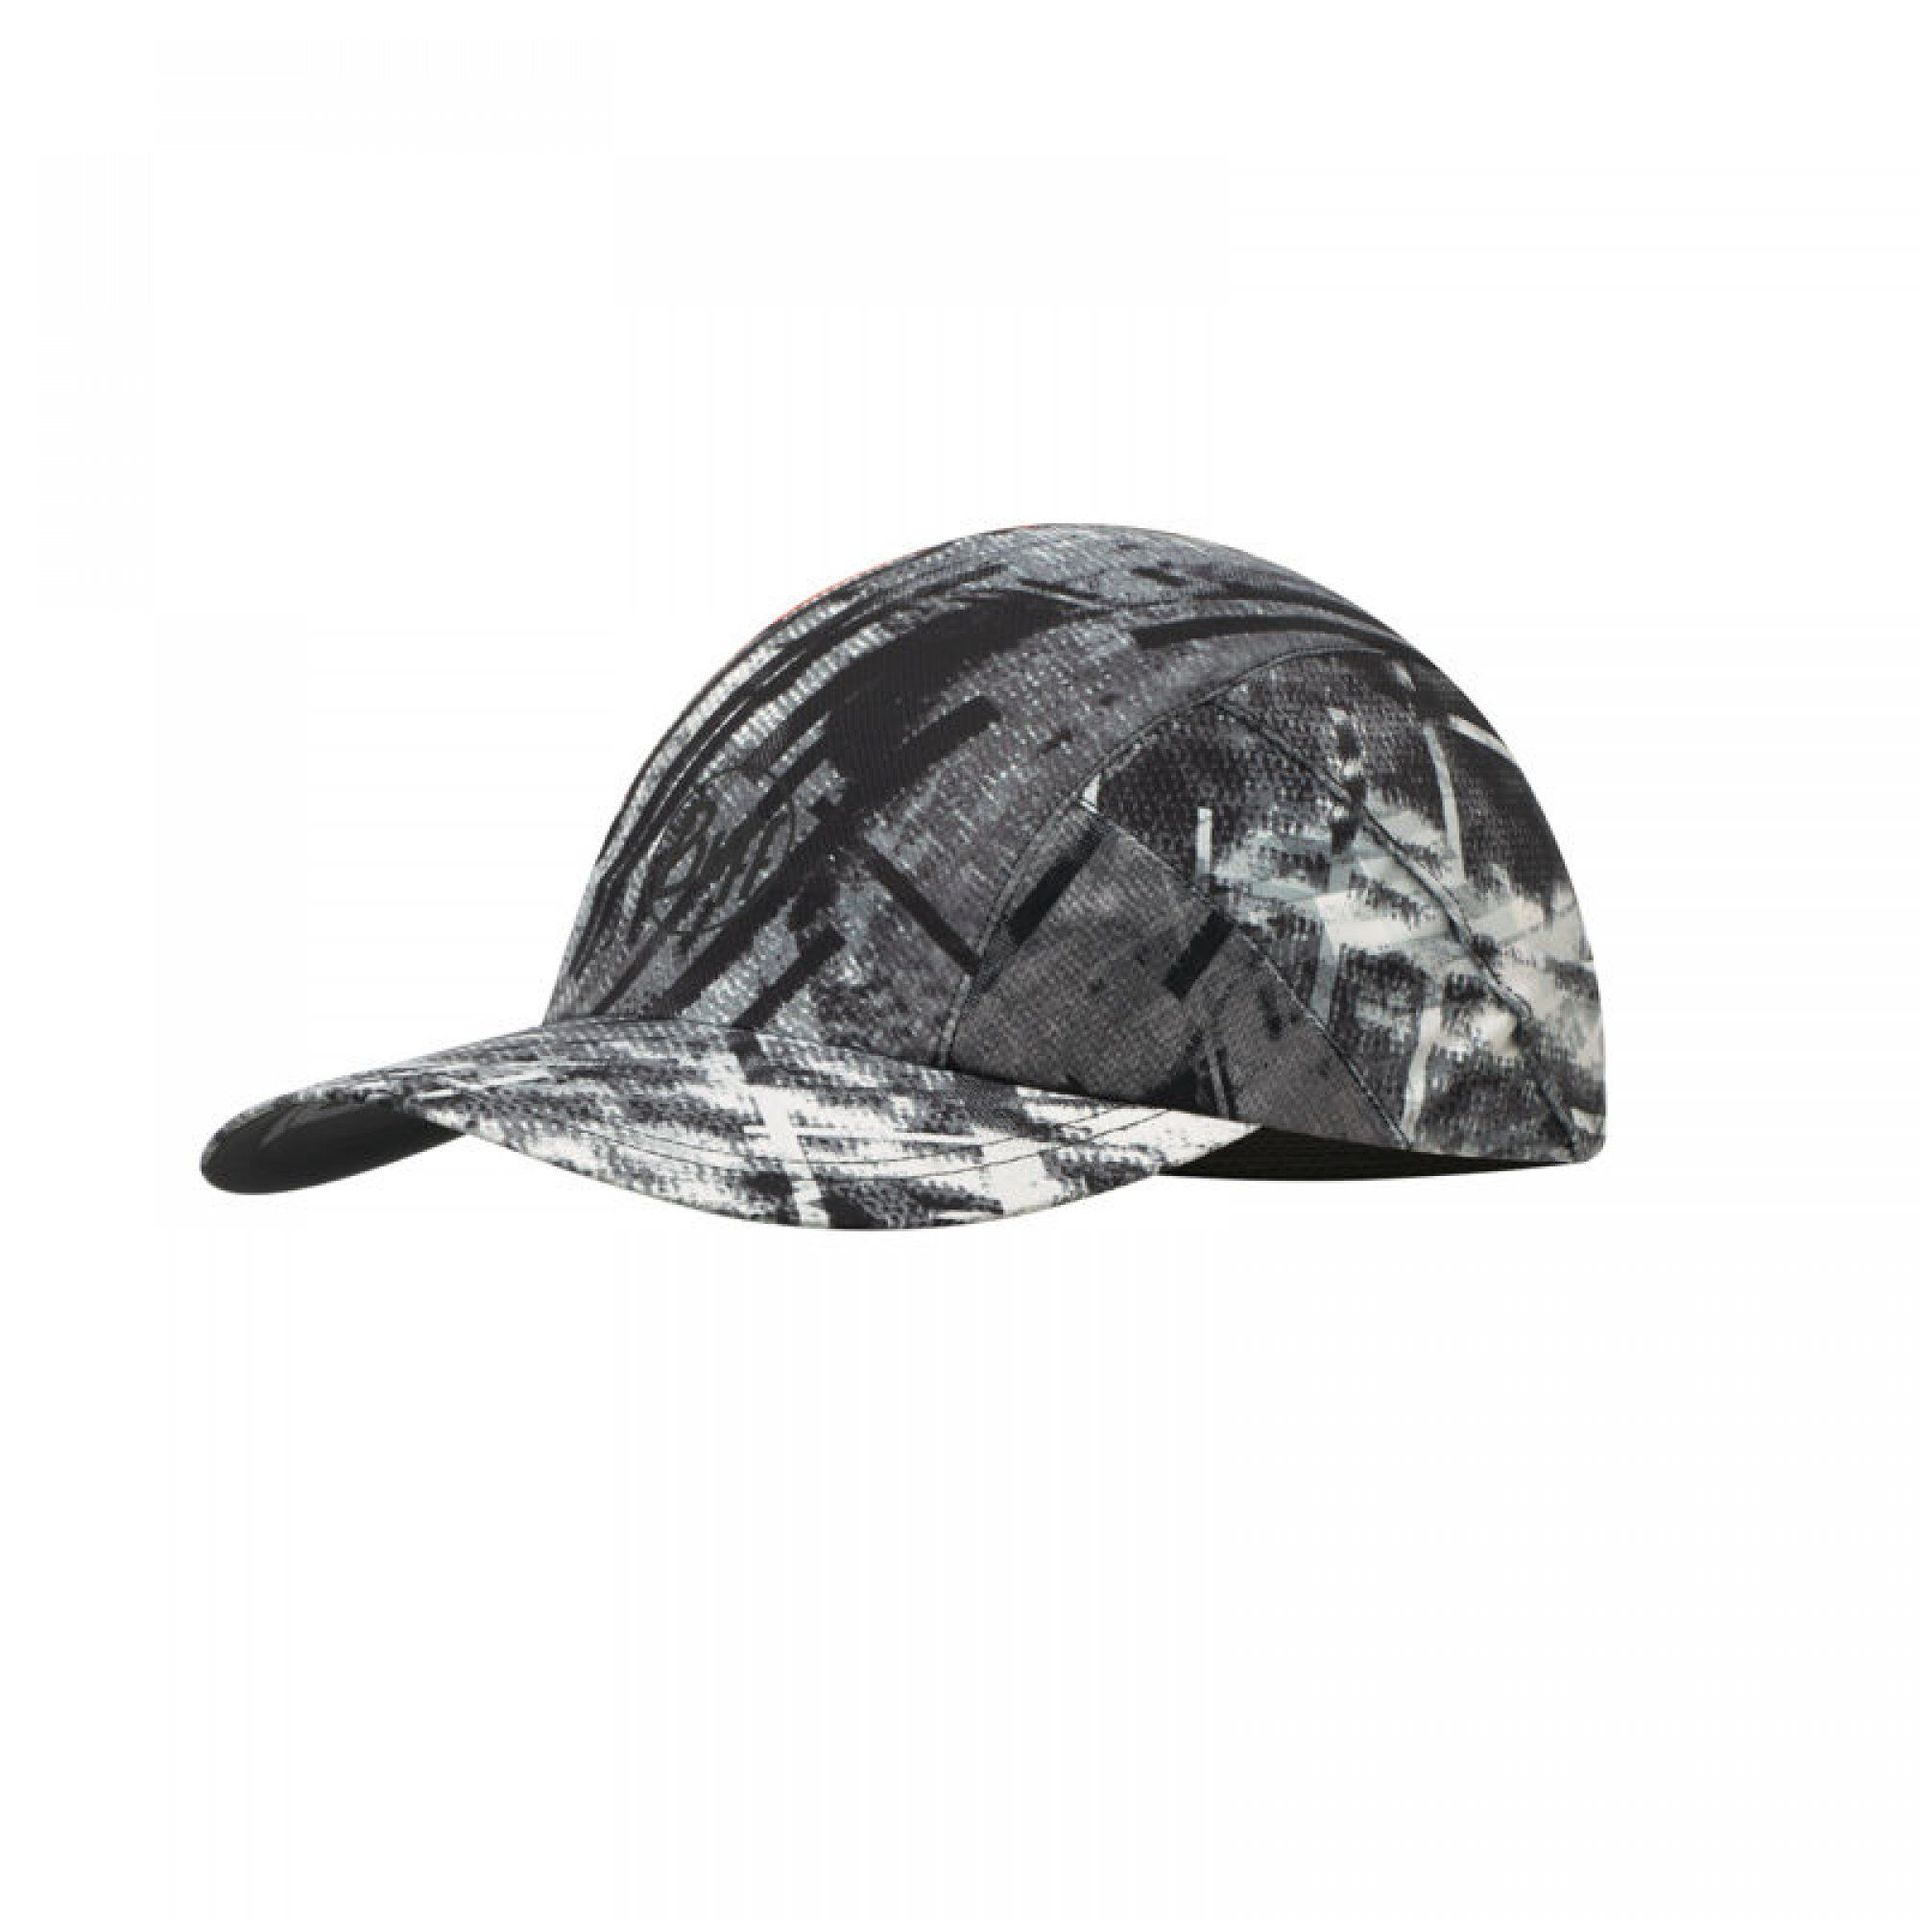 CZAPKA Z DASZKIEM BUFF PRO RUN CAP R-CITY JUNGLE GREY